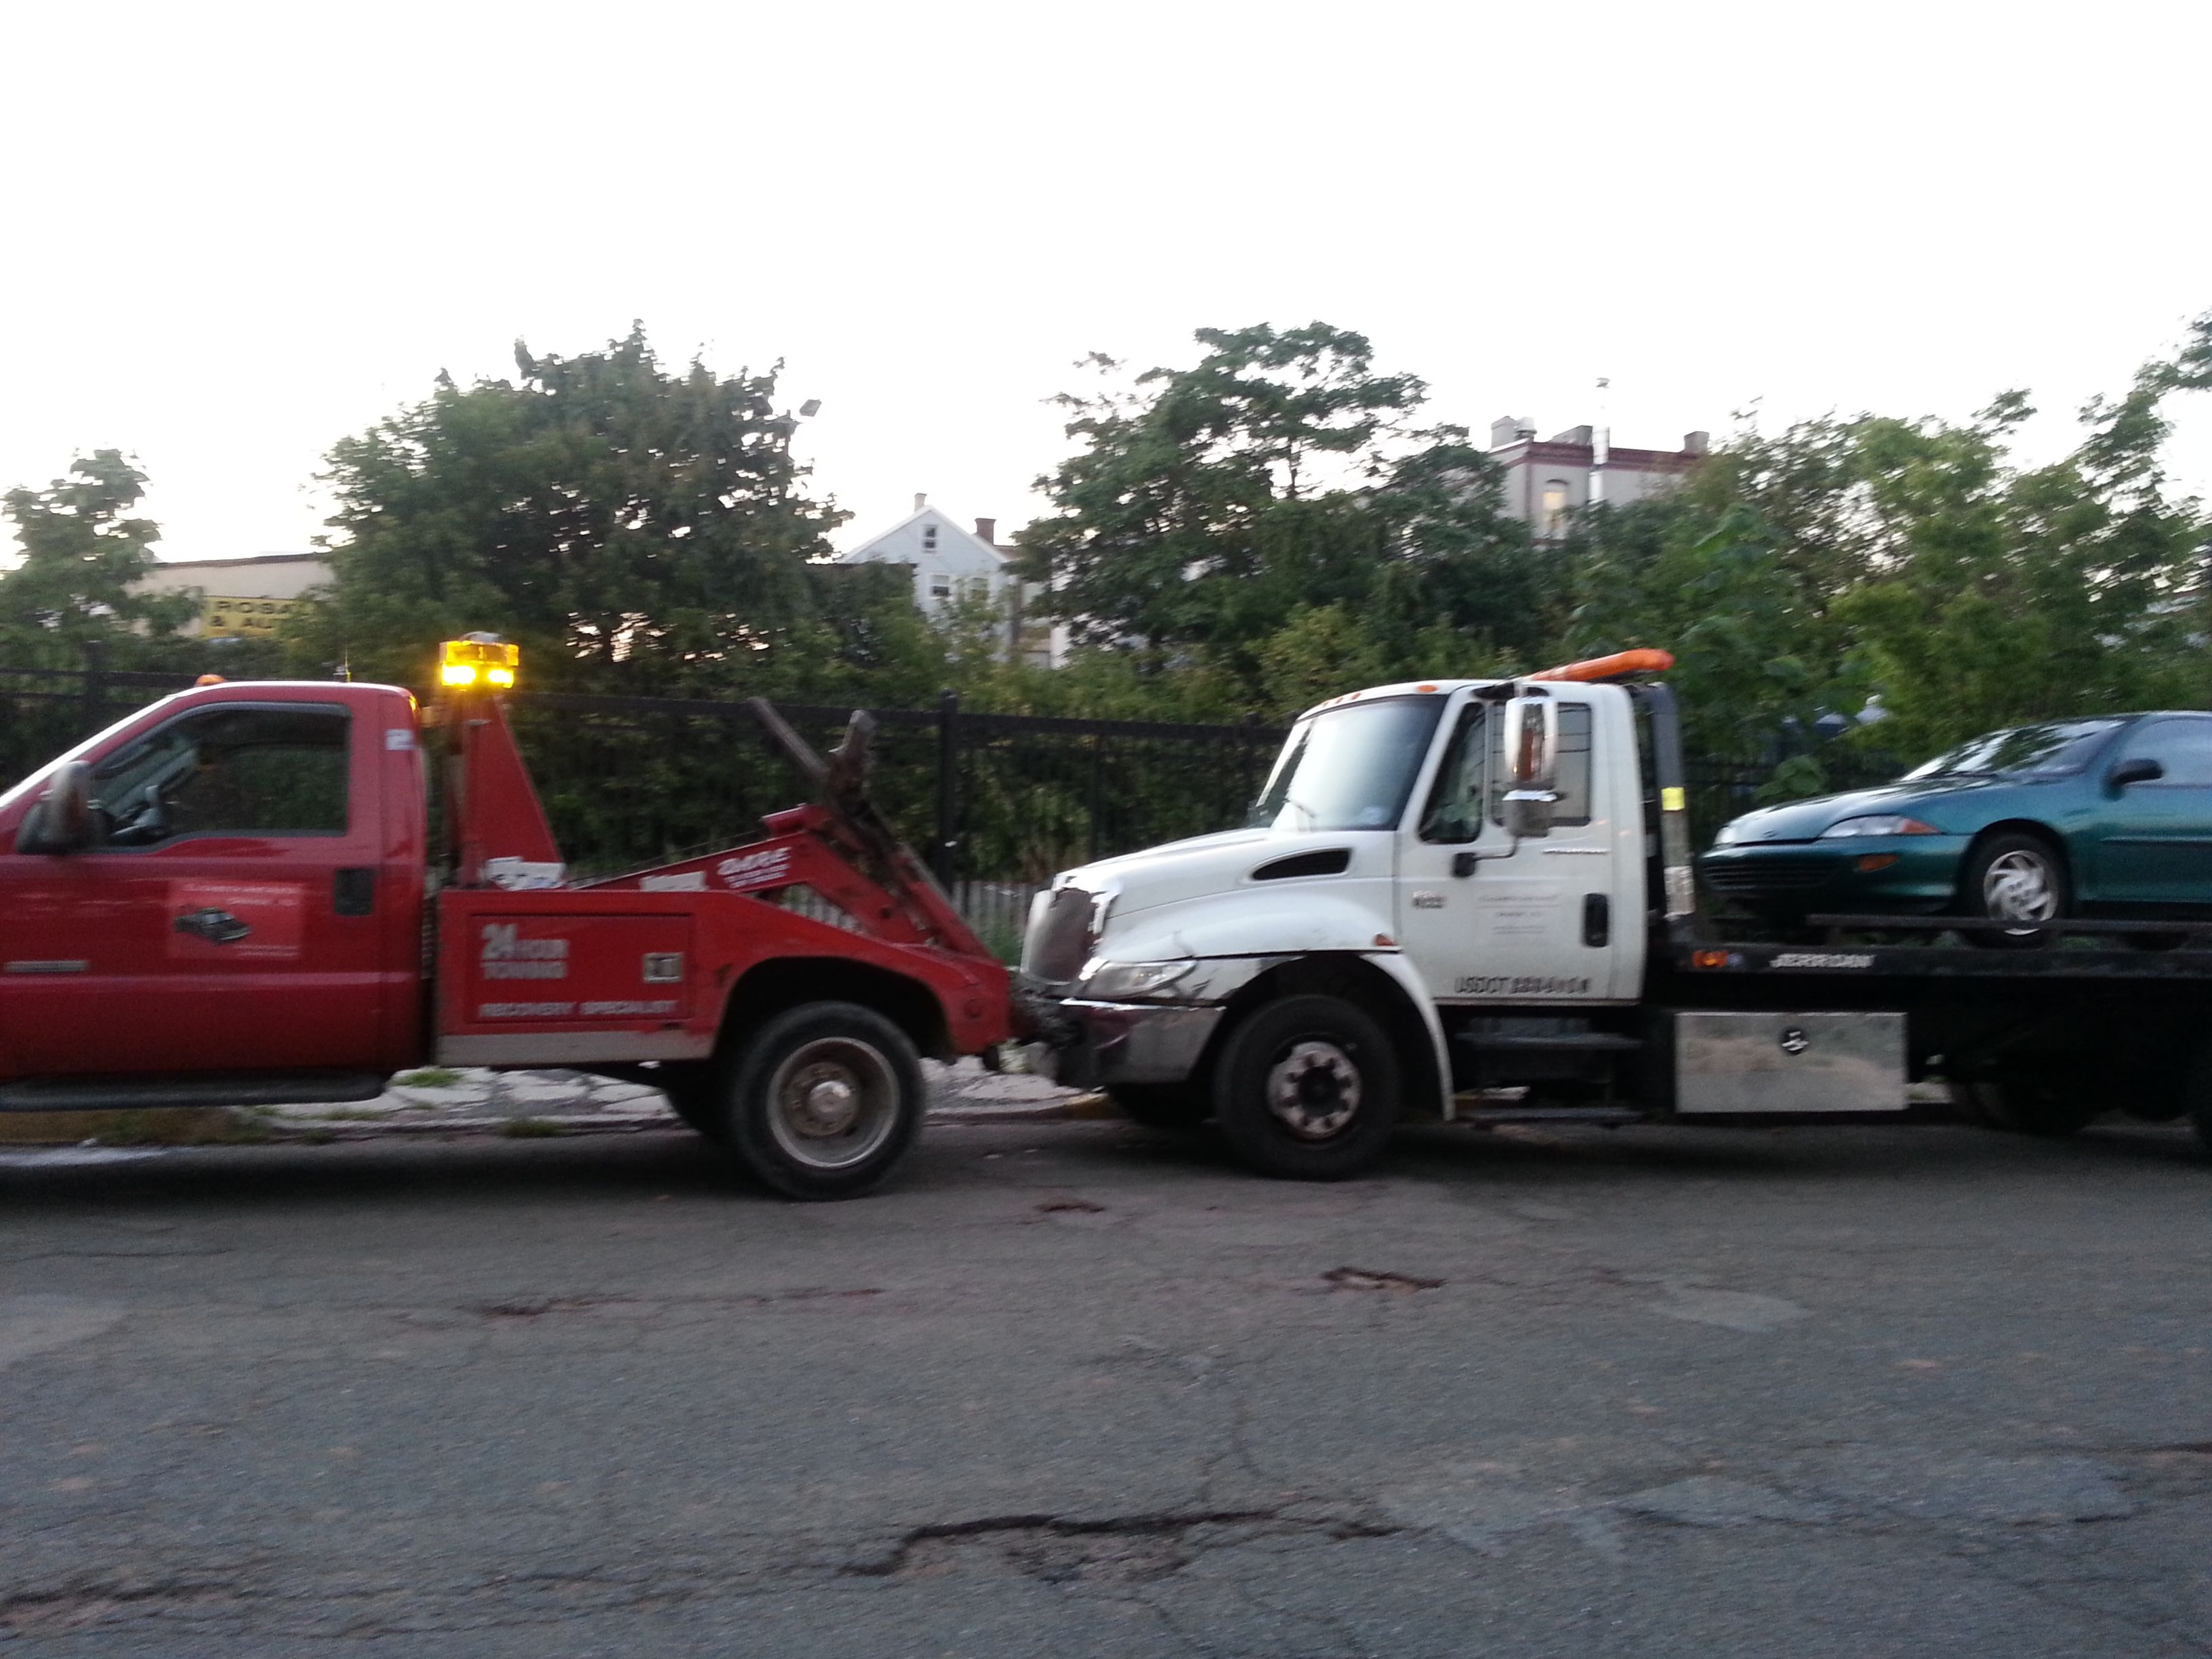 Pin of out tow trucks towing a junk car away. Trucks